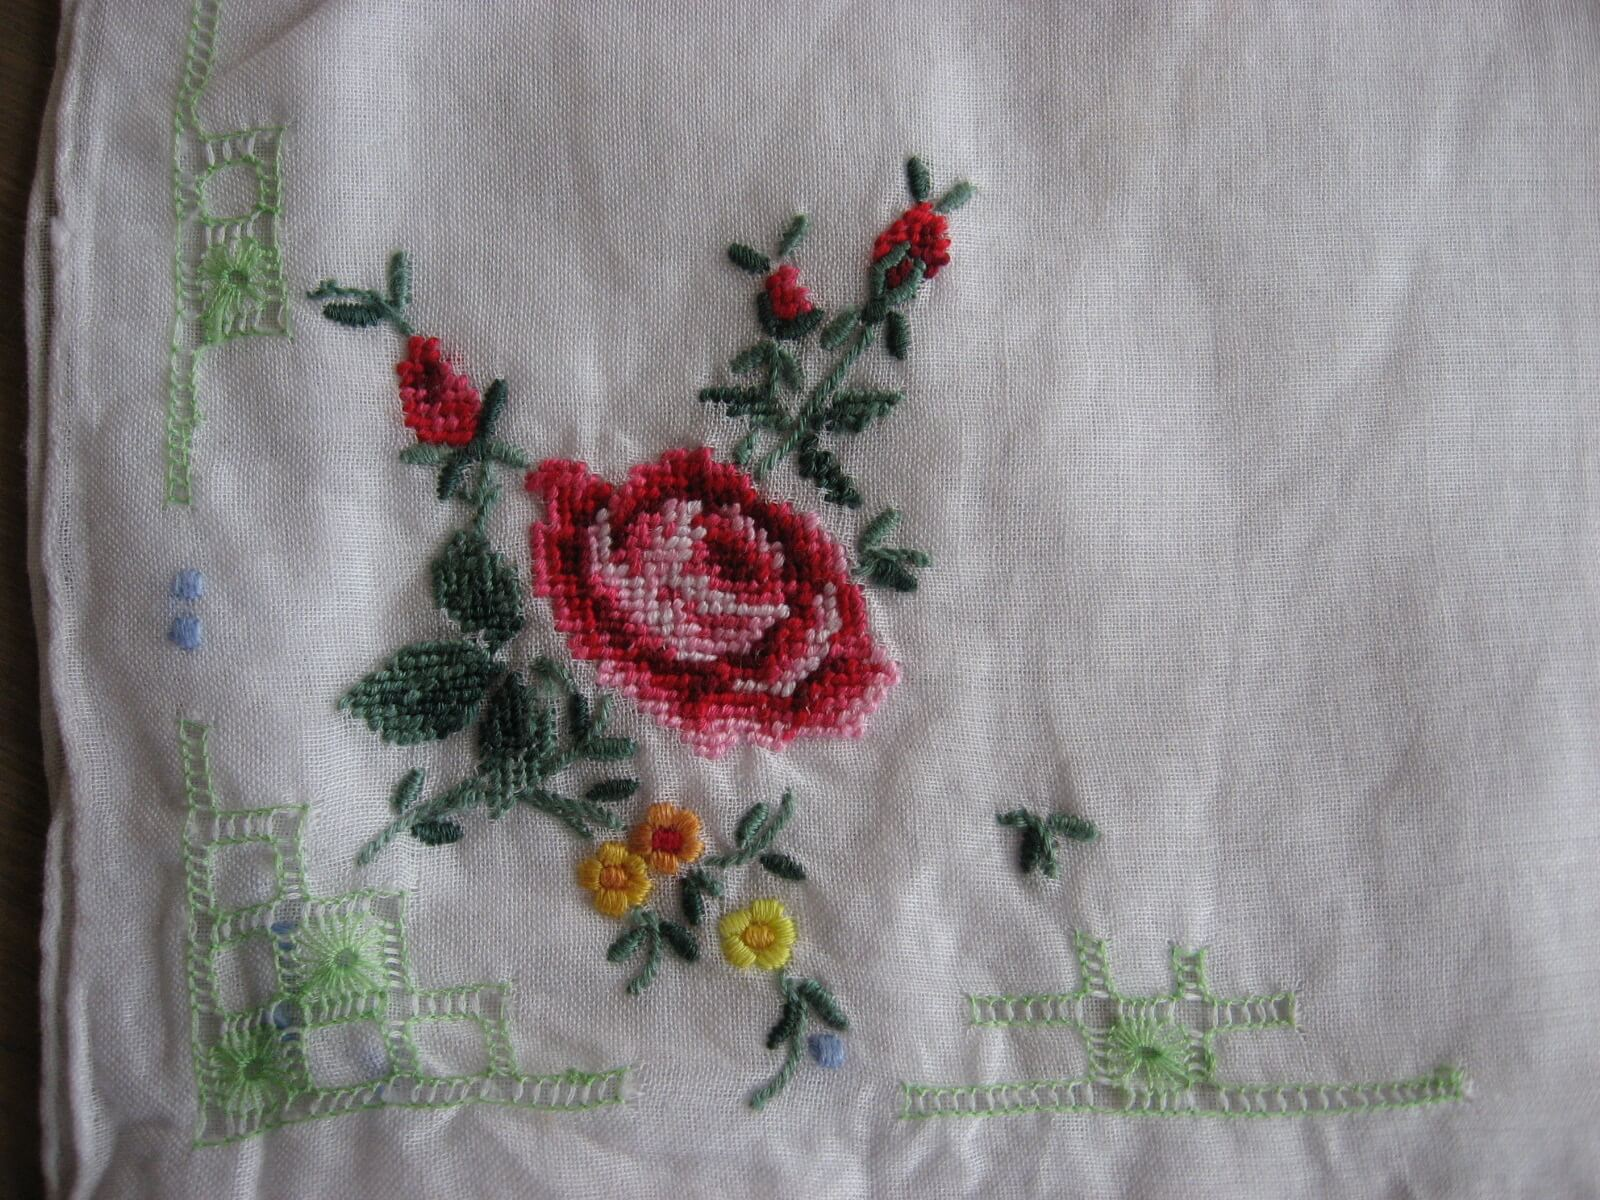 handkerchief red rose embroidered linen at PumpjackPiddlewick